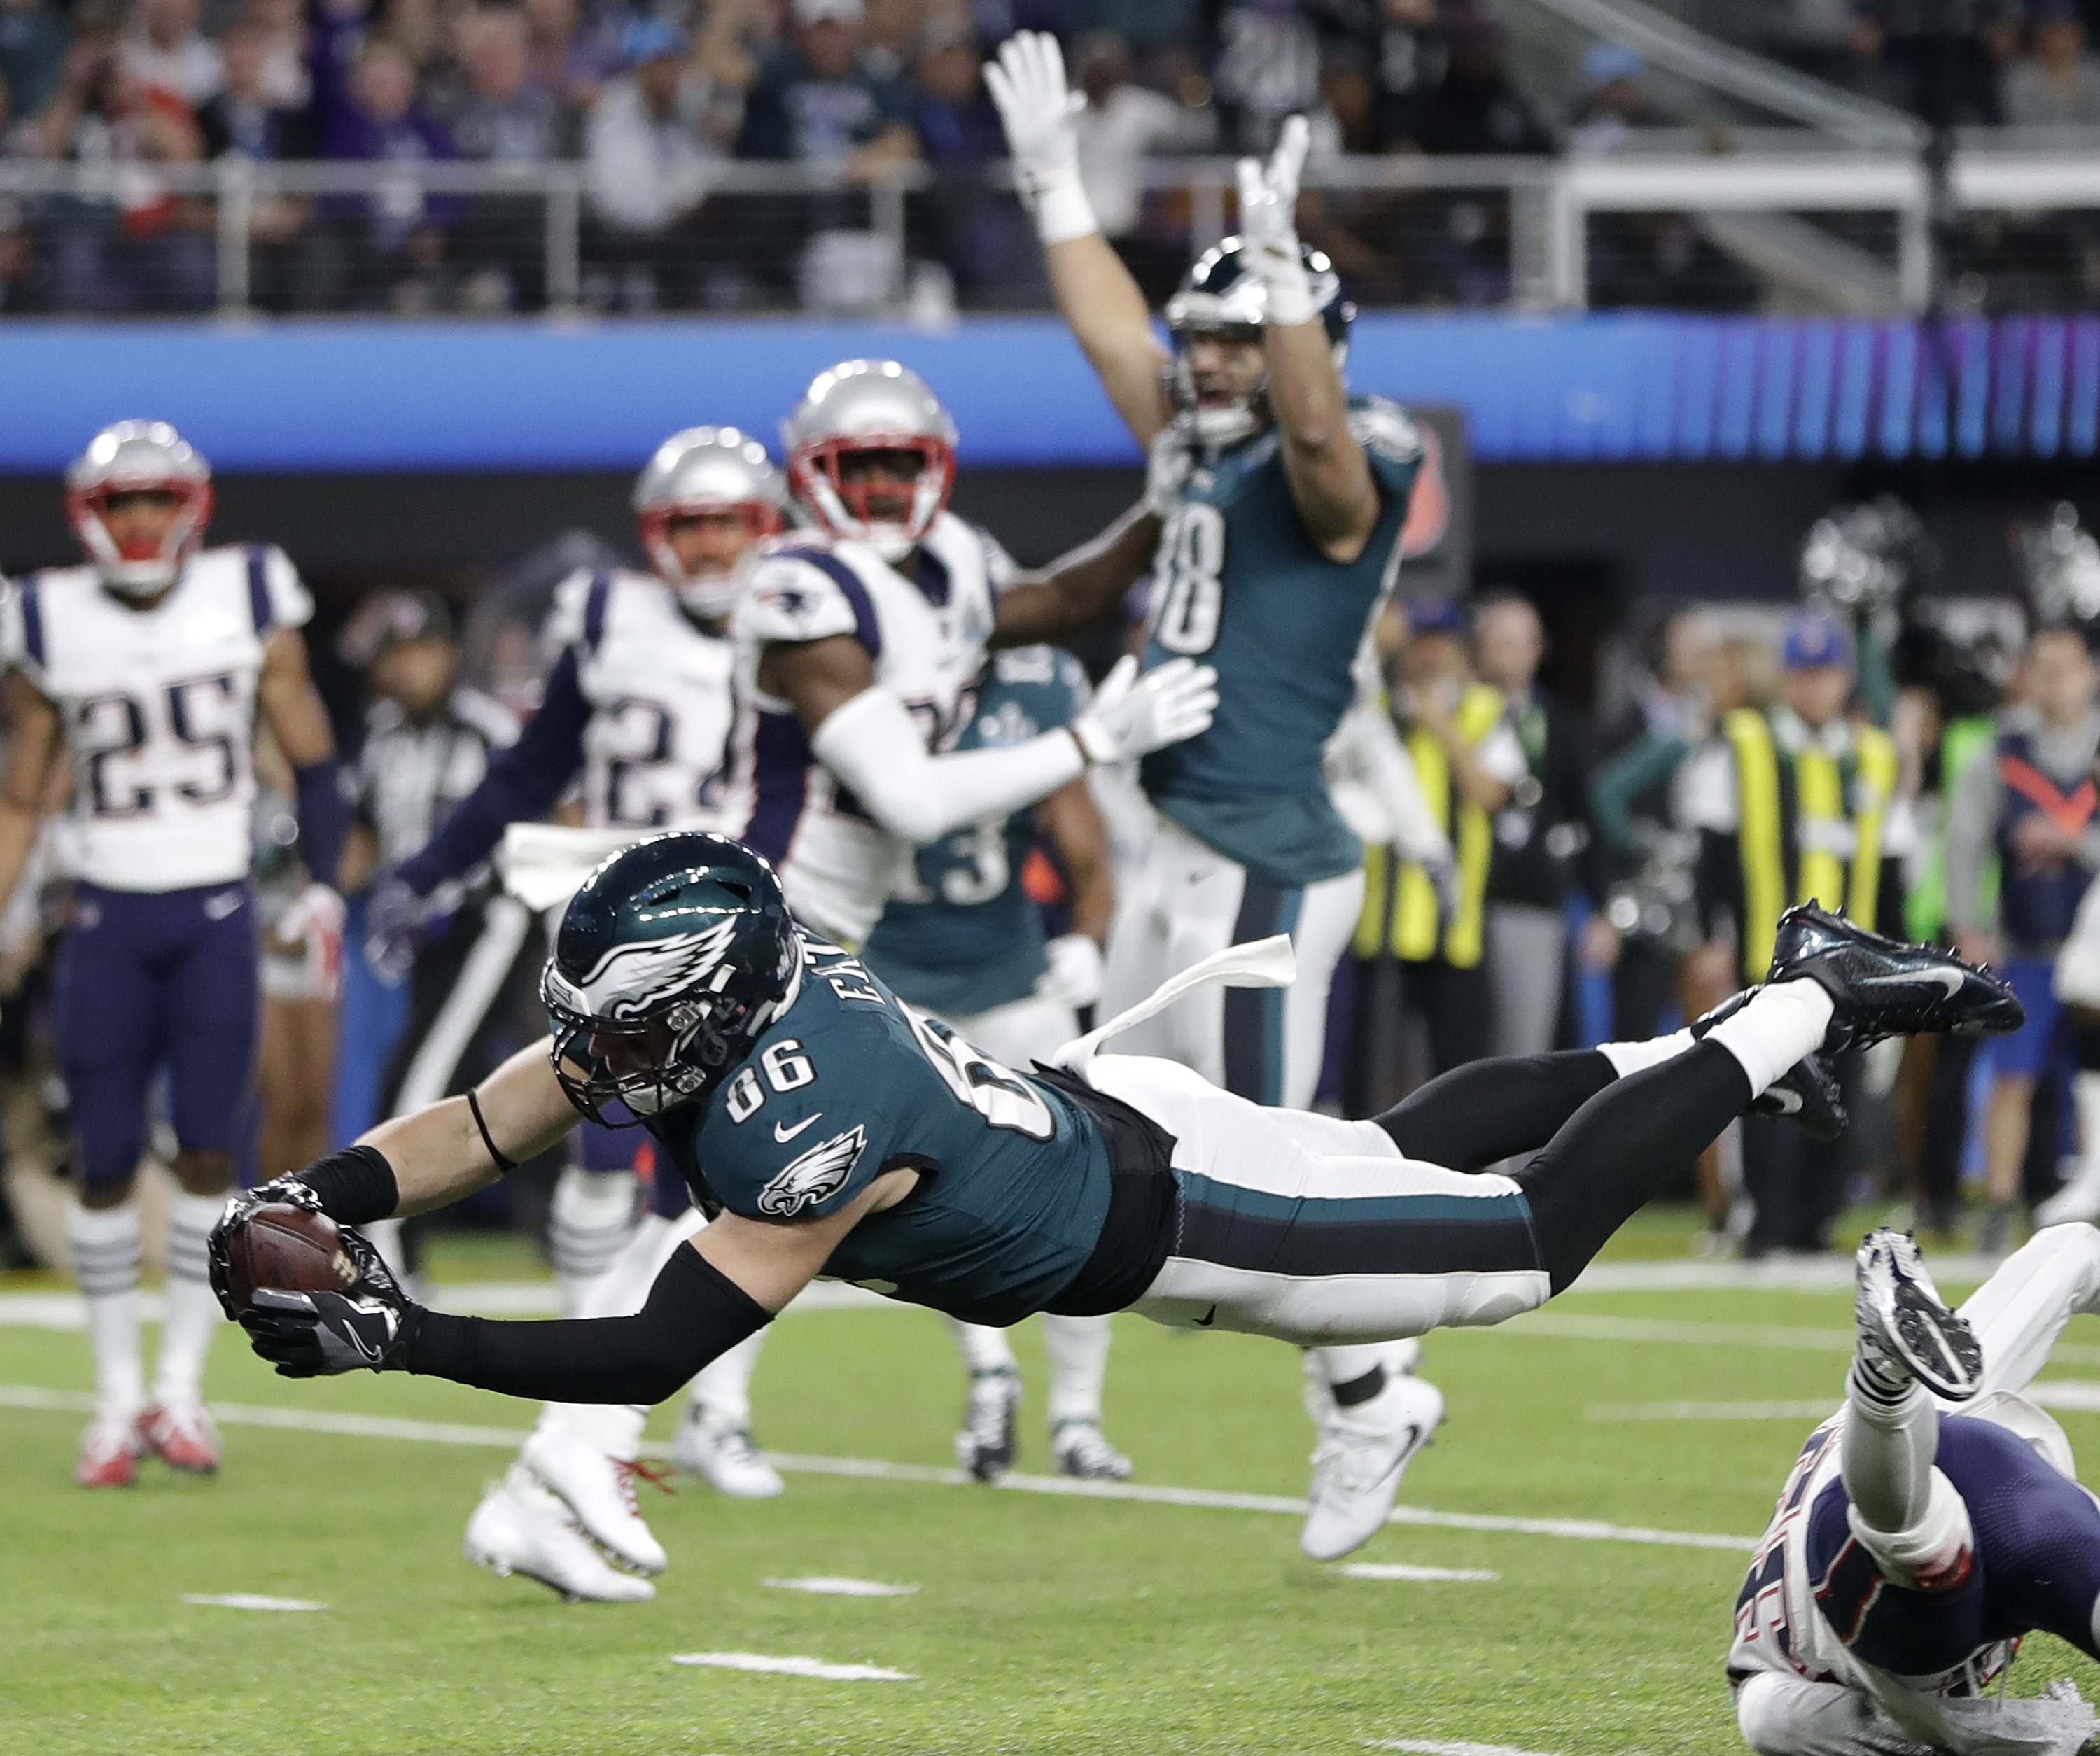 "<div class=""meta image-caption""><div class=""origin-logo origin-image ap""><span>AP</span></div><span class=""caption-text"">Philadelphia Eagles' Zach Ertz dives into the end zone for a touchdown during the second half of the NFL Super Bowl 52 football game. (AP Photo/Mark Humphrey)</span></div>"